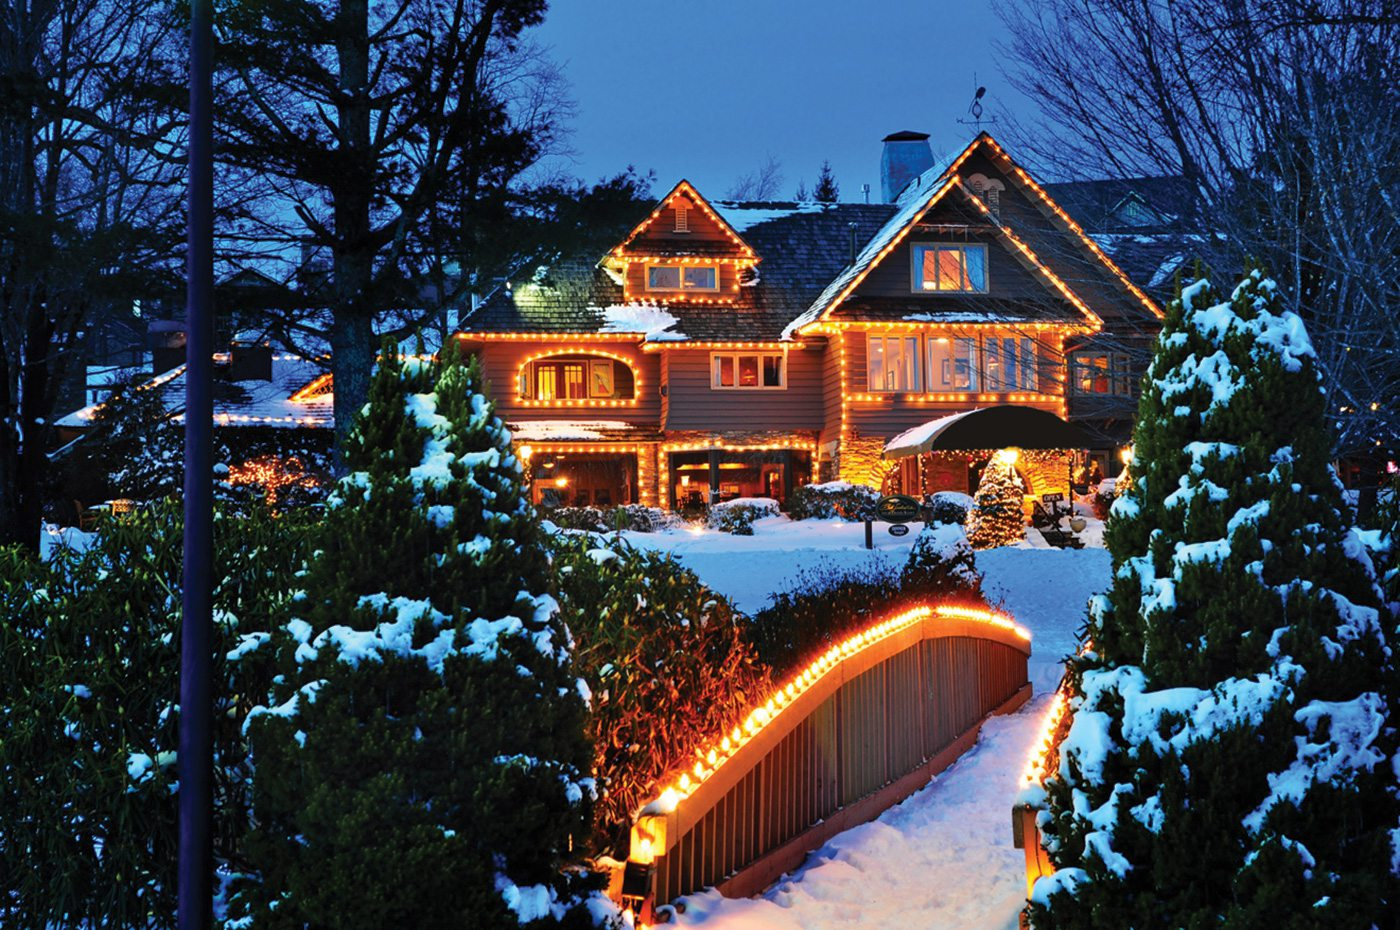 Winter scene at dusk, with a house in the distance bordered by white Christmas lights and snowy green evergreen trees in the foreground.